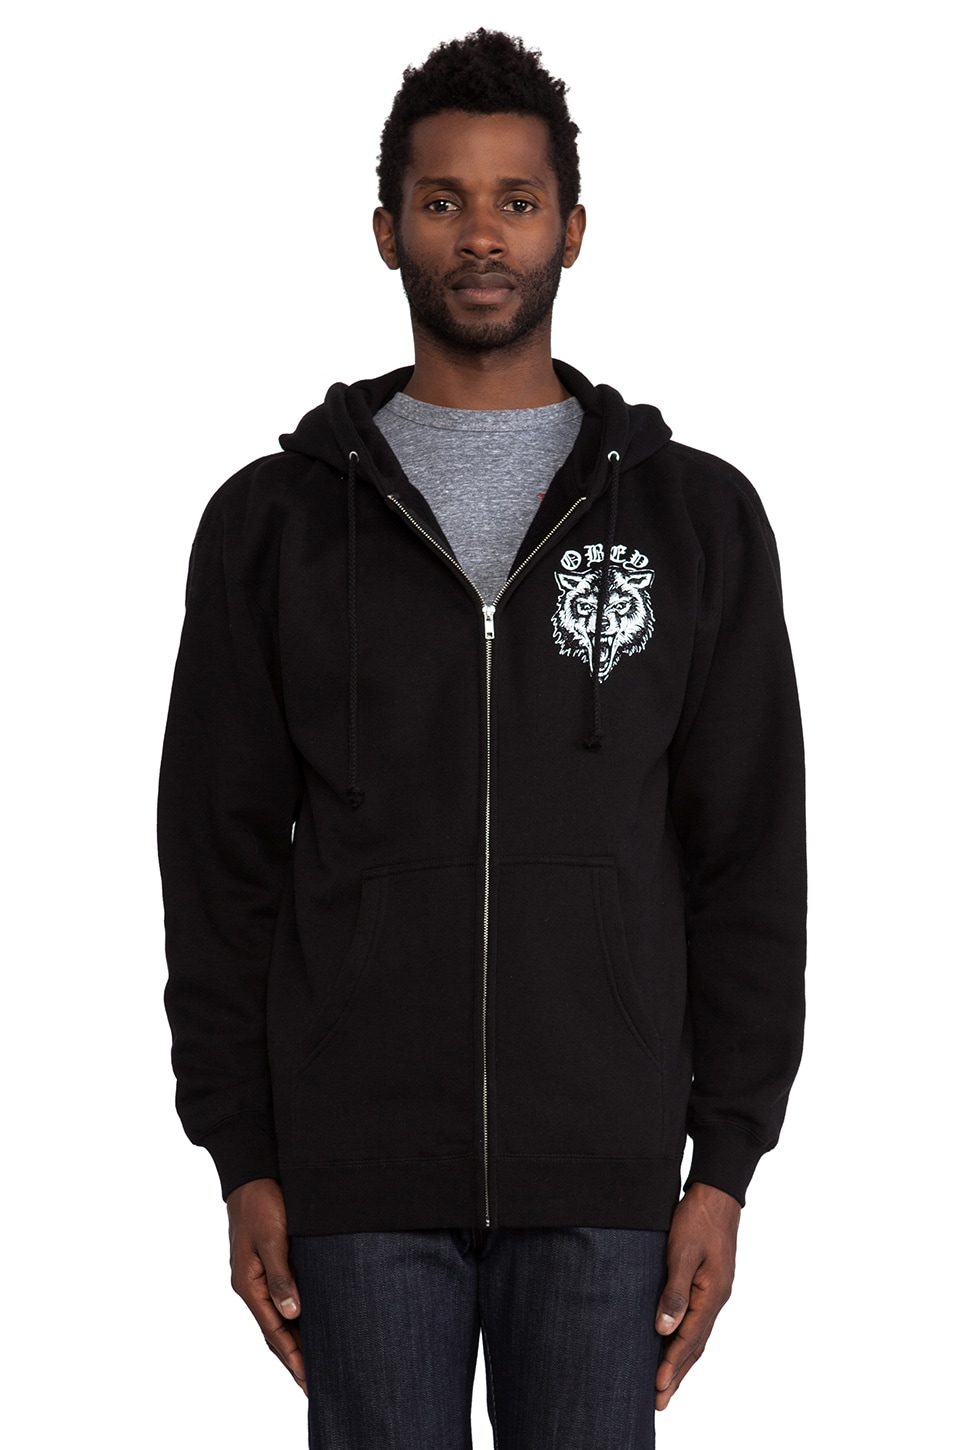 Obey Wolf Posse Zip Hoodie in Black